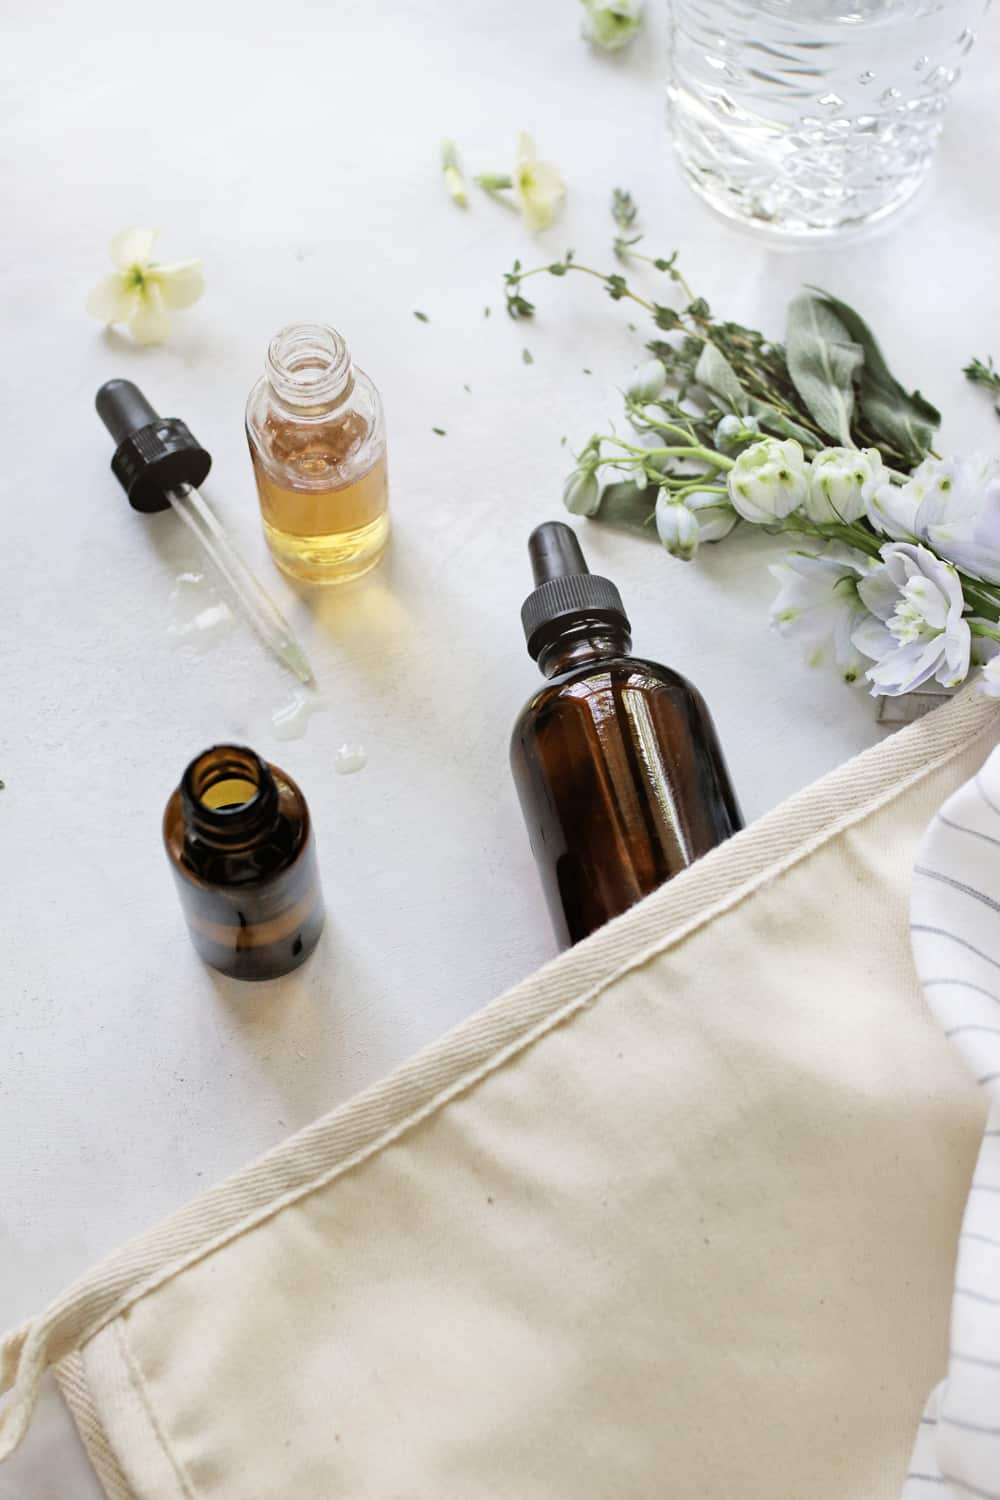 A Beginner's Guide to Making Your Own Tinctures